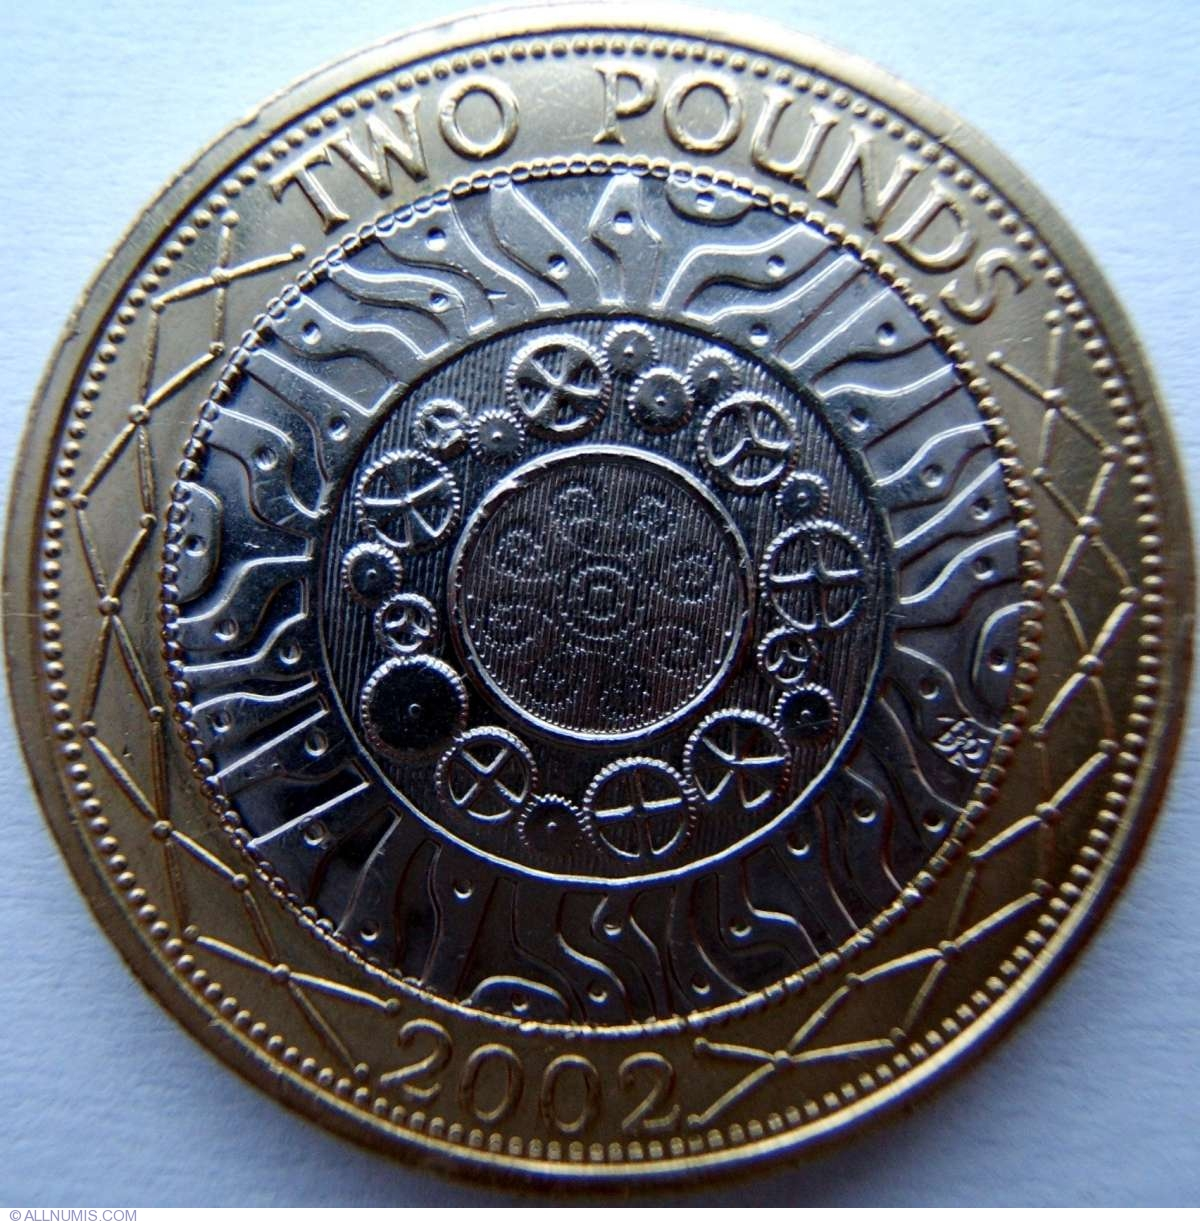 Coin Of 2 Pounds 2002 Technology From Great Britain Id